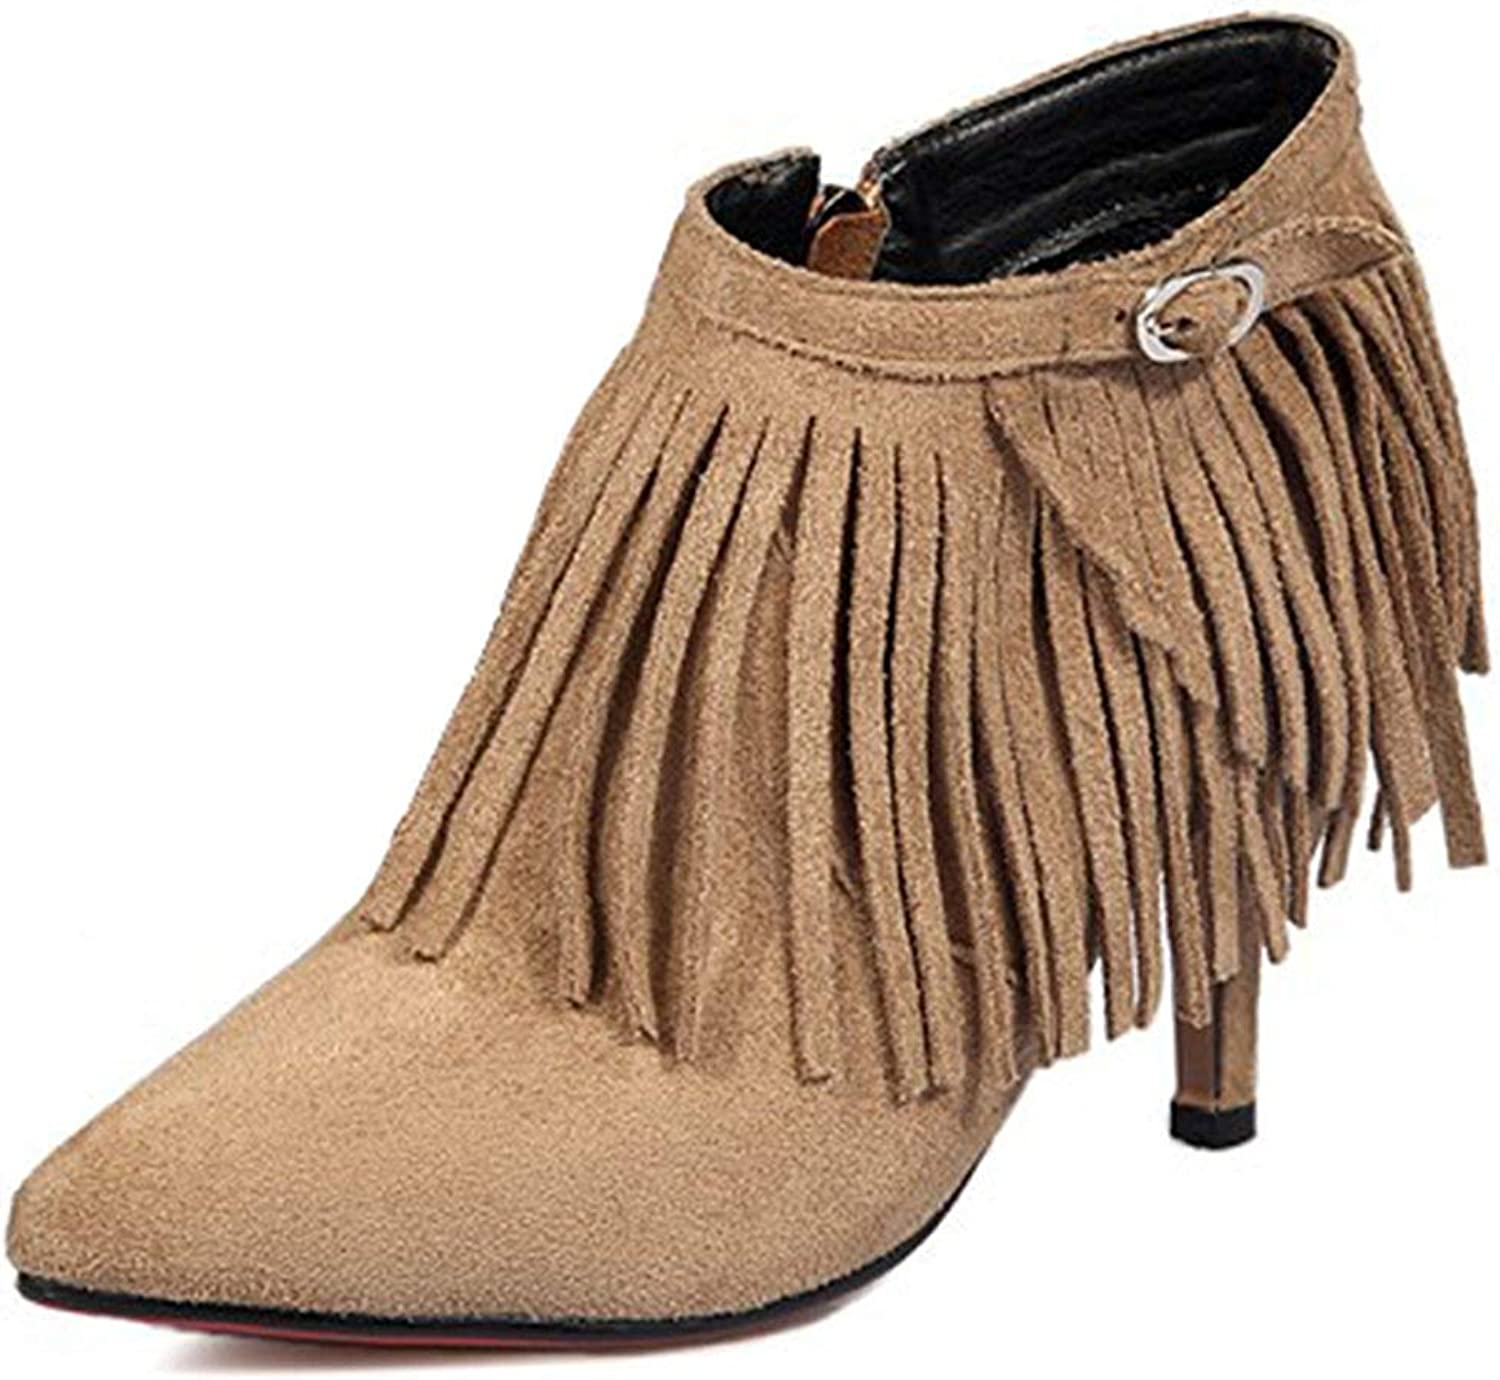 Lelehwhge Women's Sexy Fringe Faux Suede Pointed Toe Short Boots Stiletto High Heel Slip On Ankle Booties Apricot 4 M US